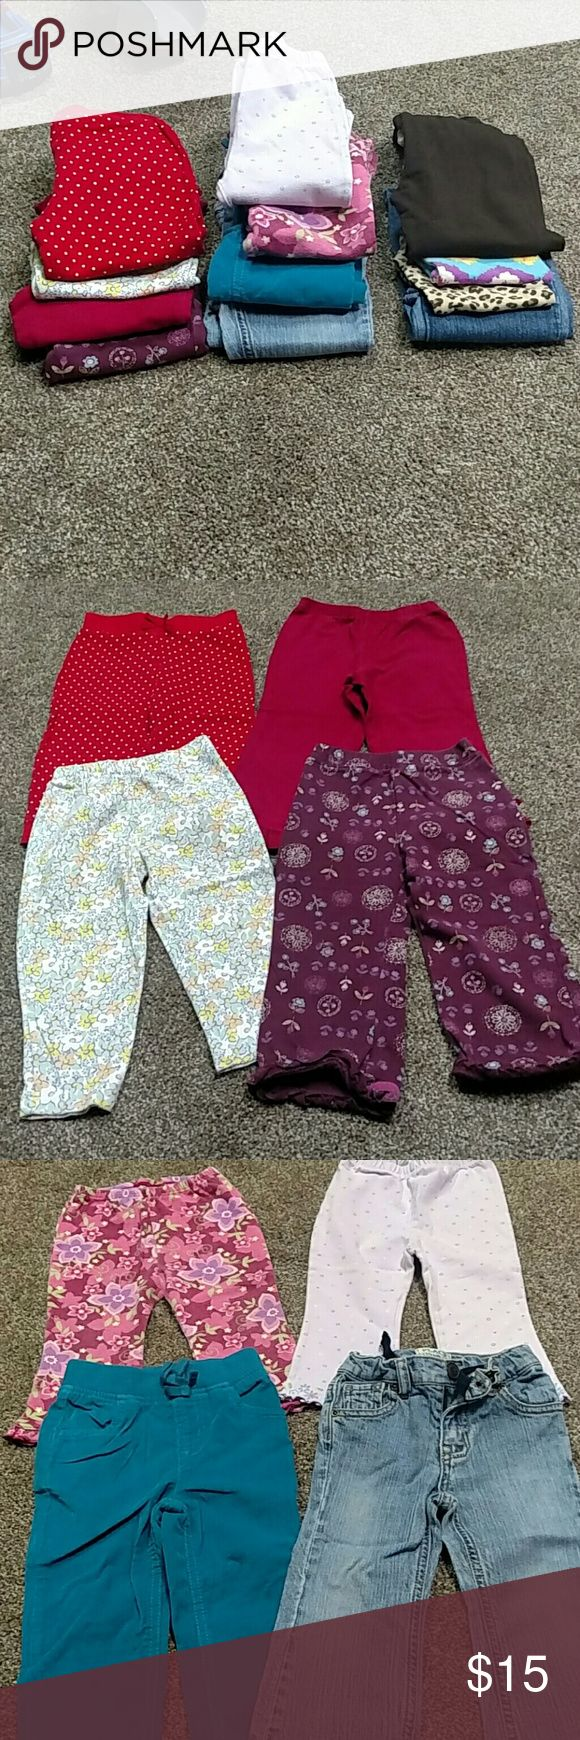 2T/24Month girls pants bundle 12 pieces Good used condition. Brands include Falls Creek Kids, Carter's, Baby LuLu, Children's Place, Jumping Beans and more Multiples Bottoms